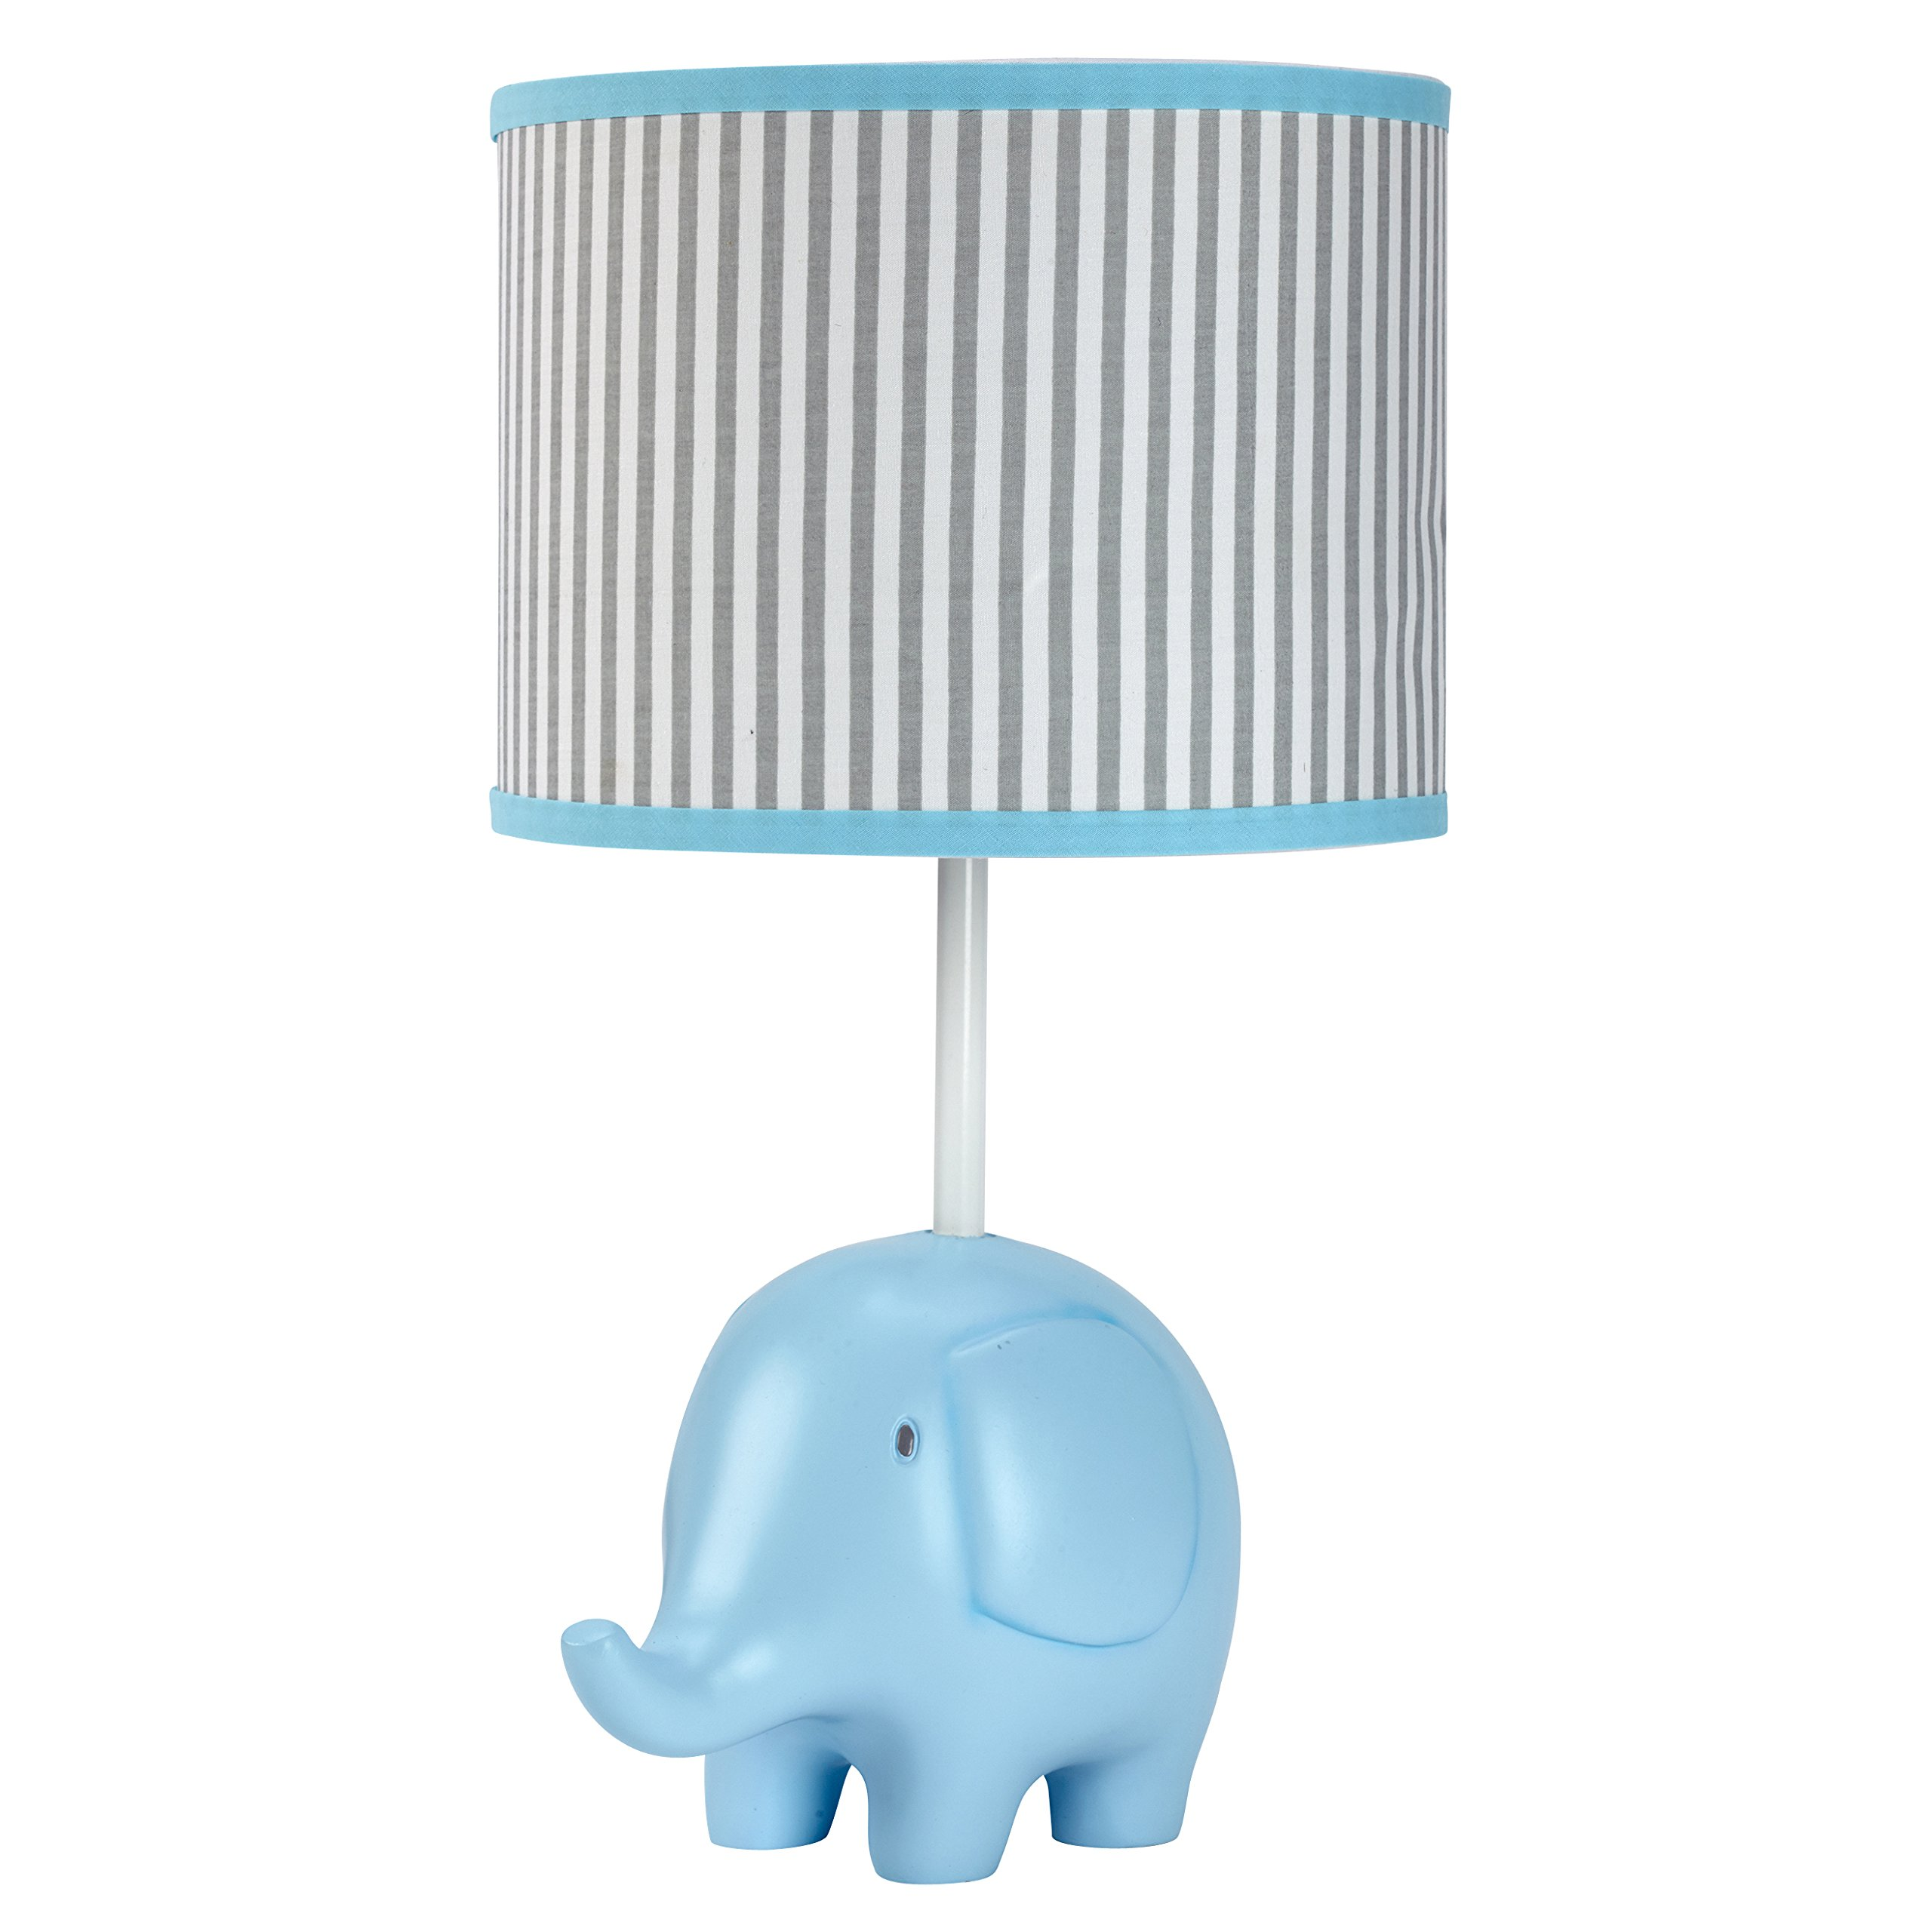 Zutano Elefant Blau Lamp and Shade, White/Blue/Grey by Zutano